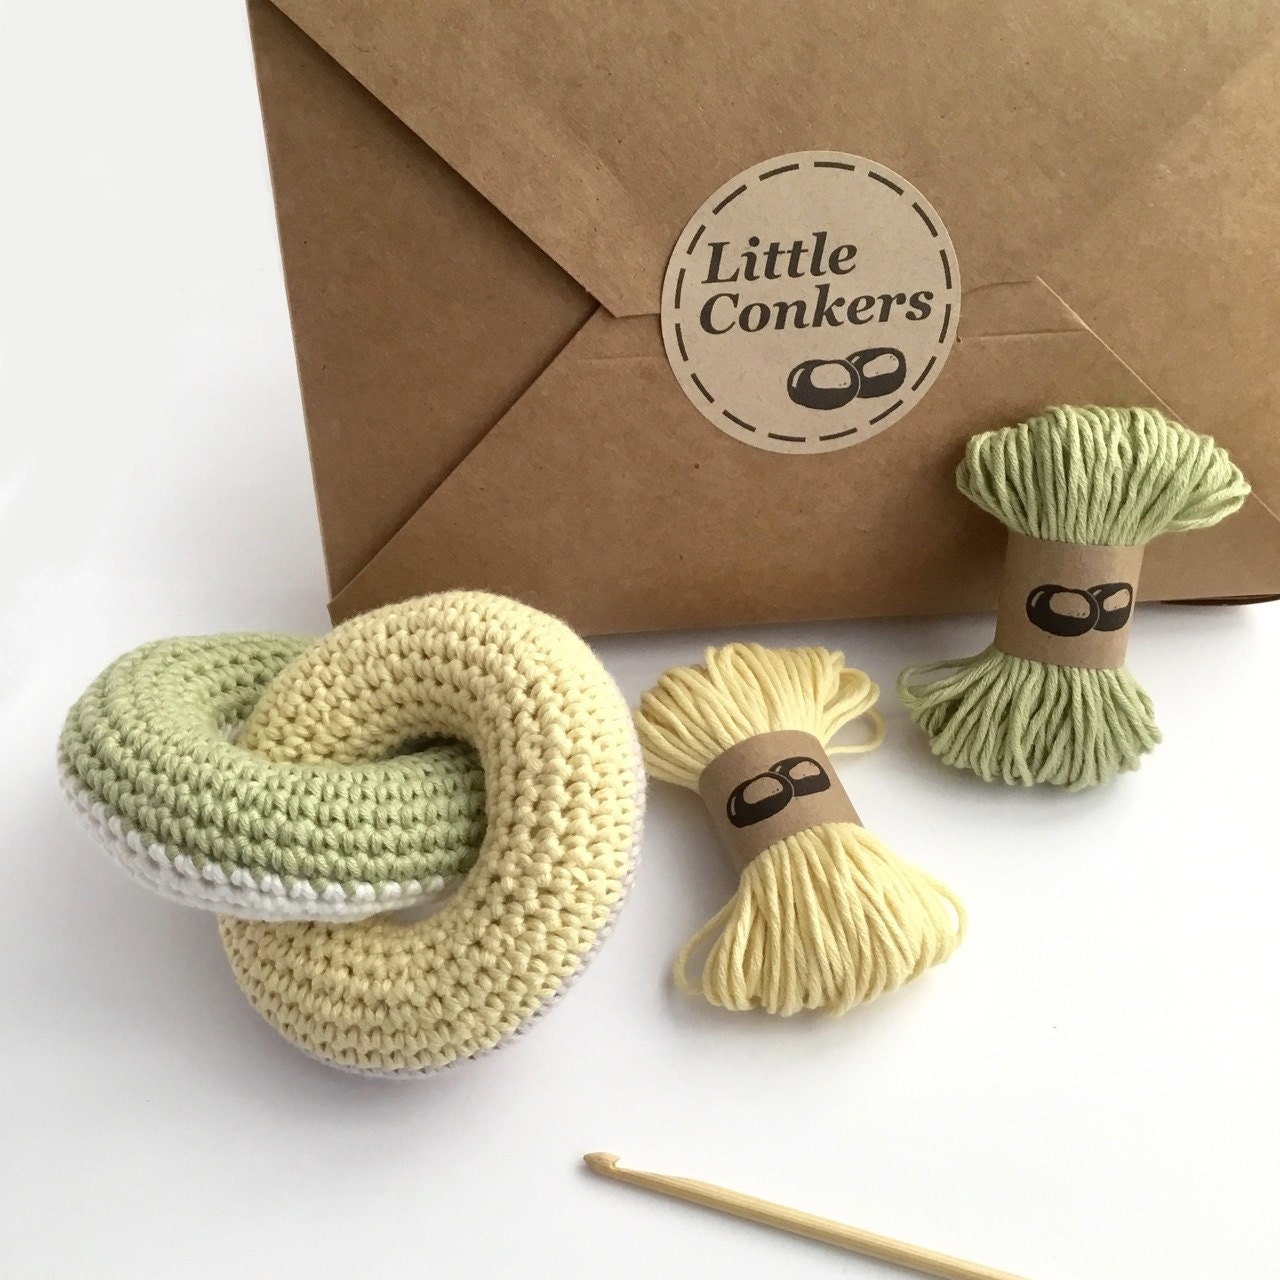 Knitting Kits For Beginners Uk : Crochet kit diy beginner gift